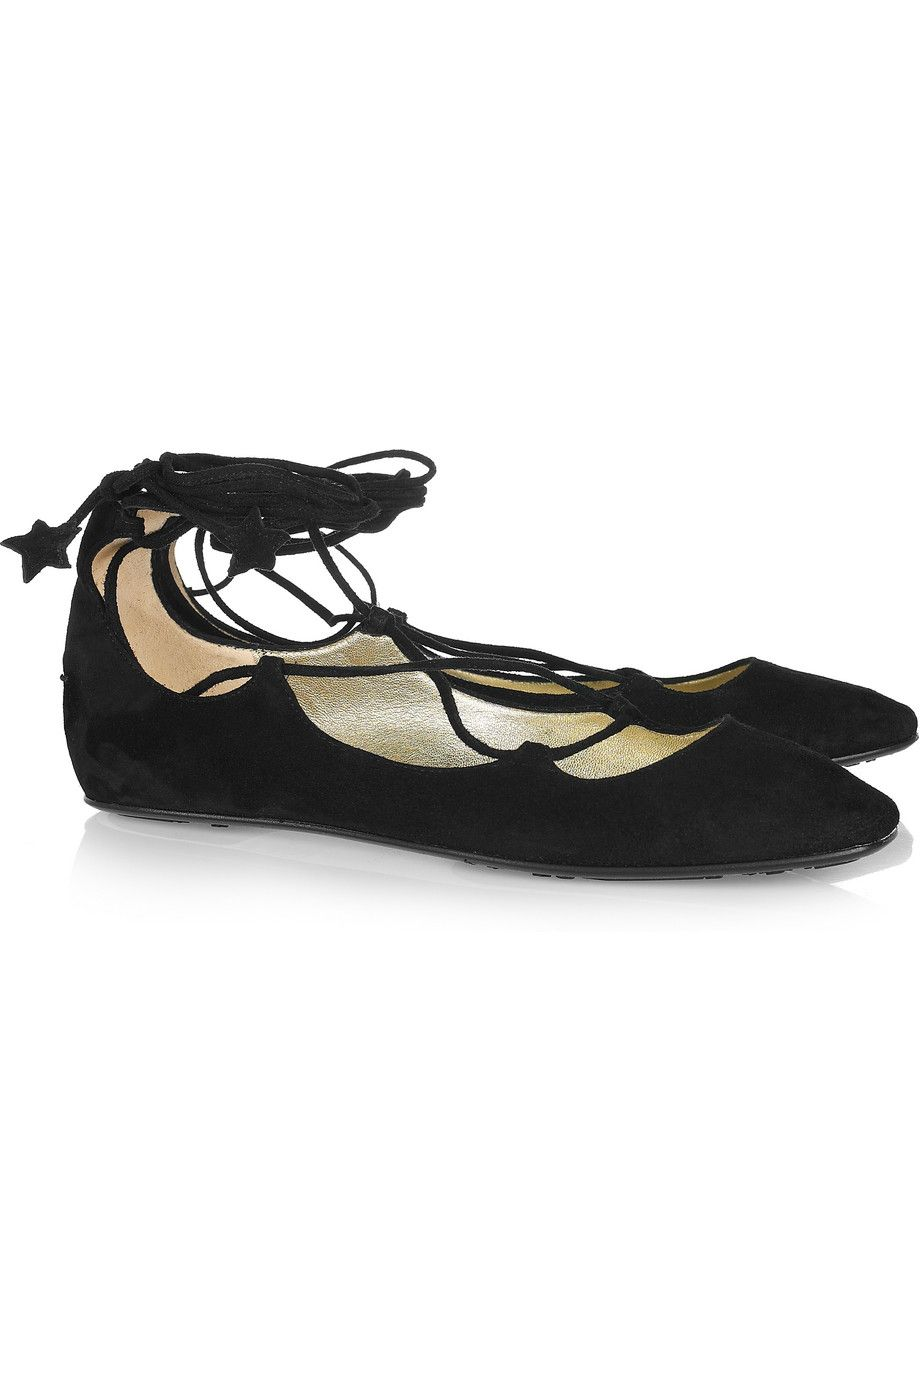 a4c3606d2182 JIMMY CHOO lace up star flats - obviously influenced by early 19th century  Regency period shoes